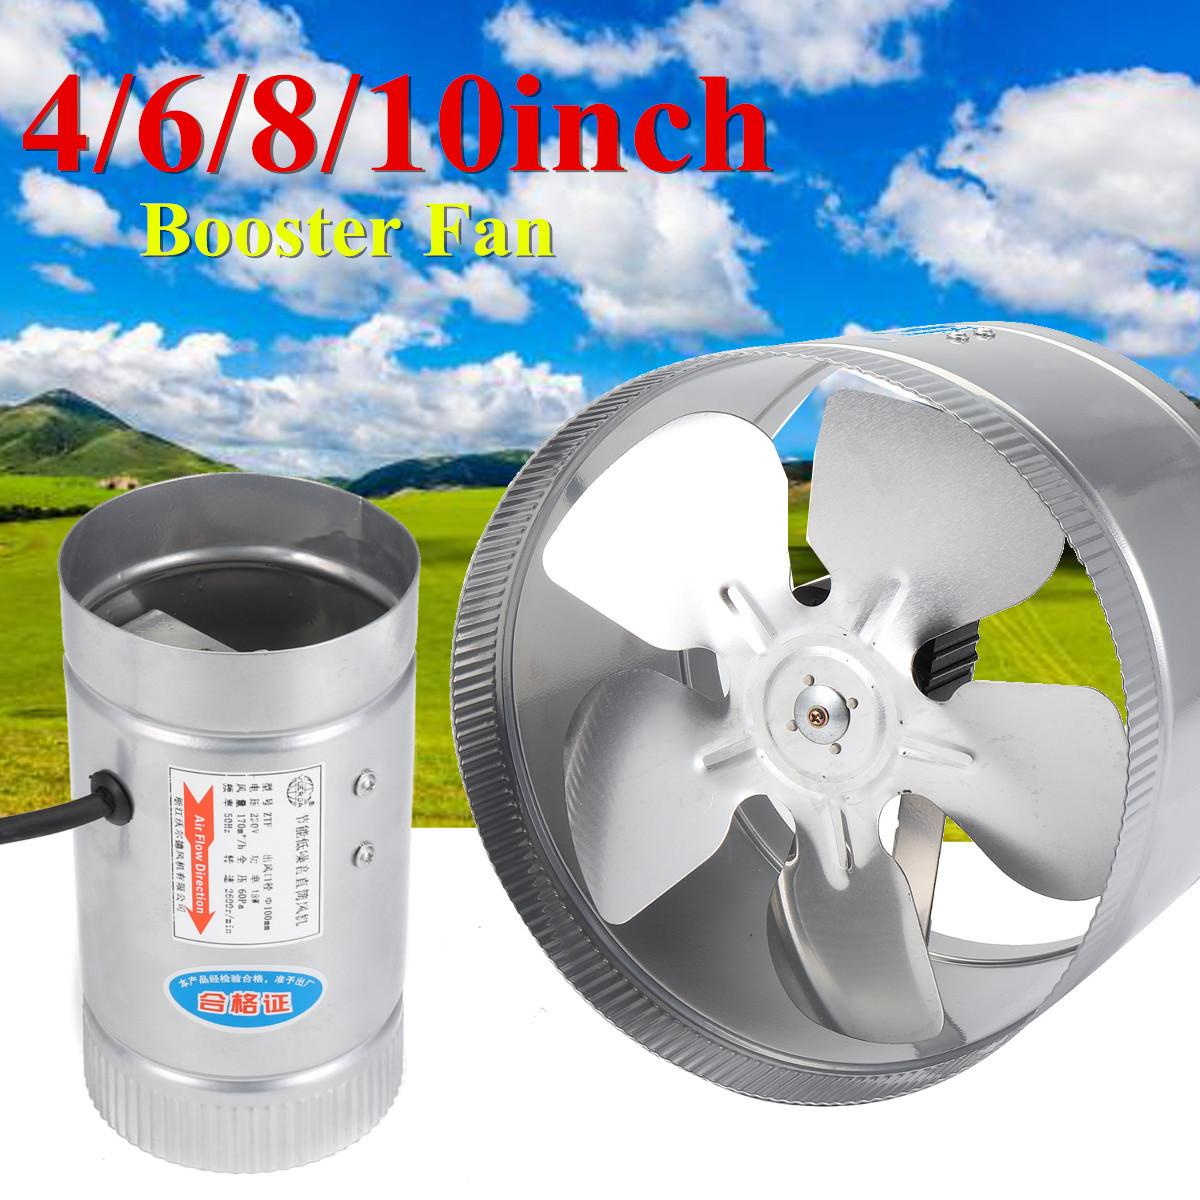 4 6 8 10 inch inline duct booster fan air exhaust ventilation blower grow vent 6 inch 6 in